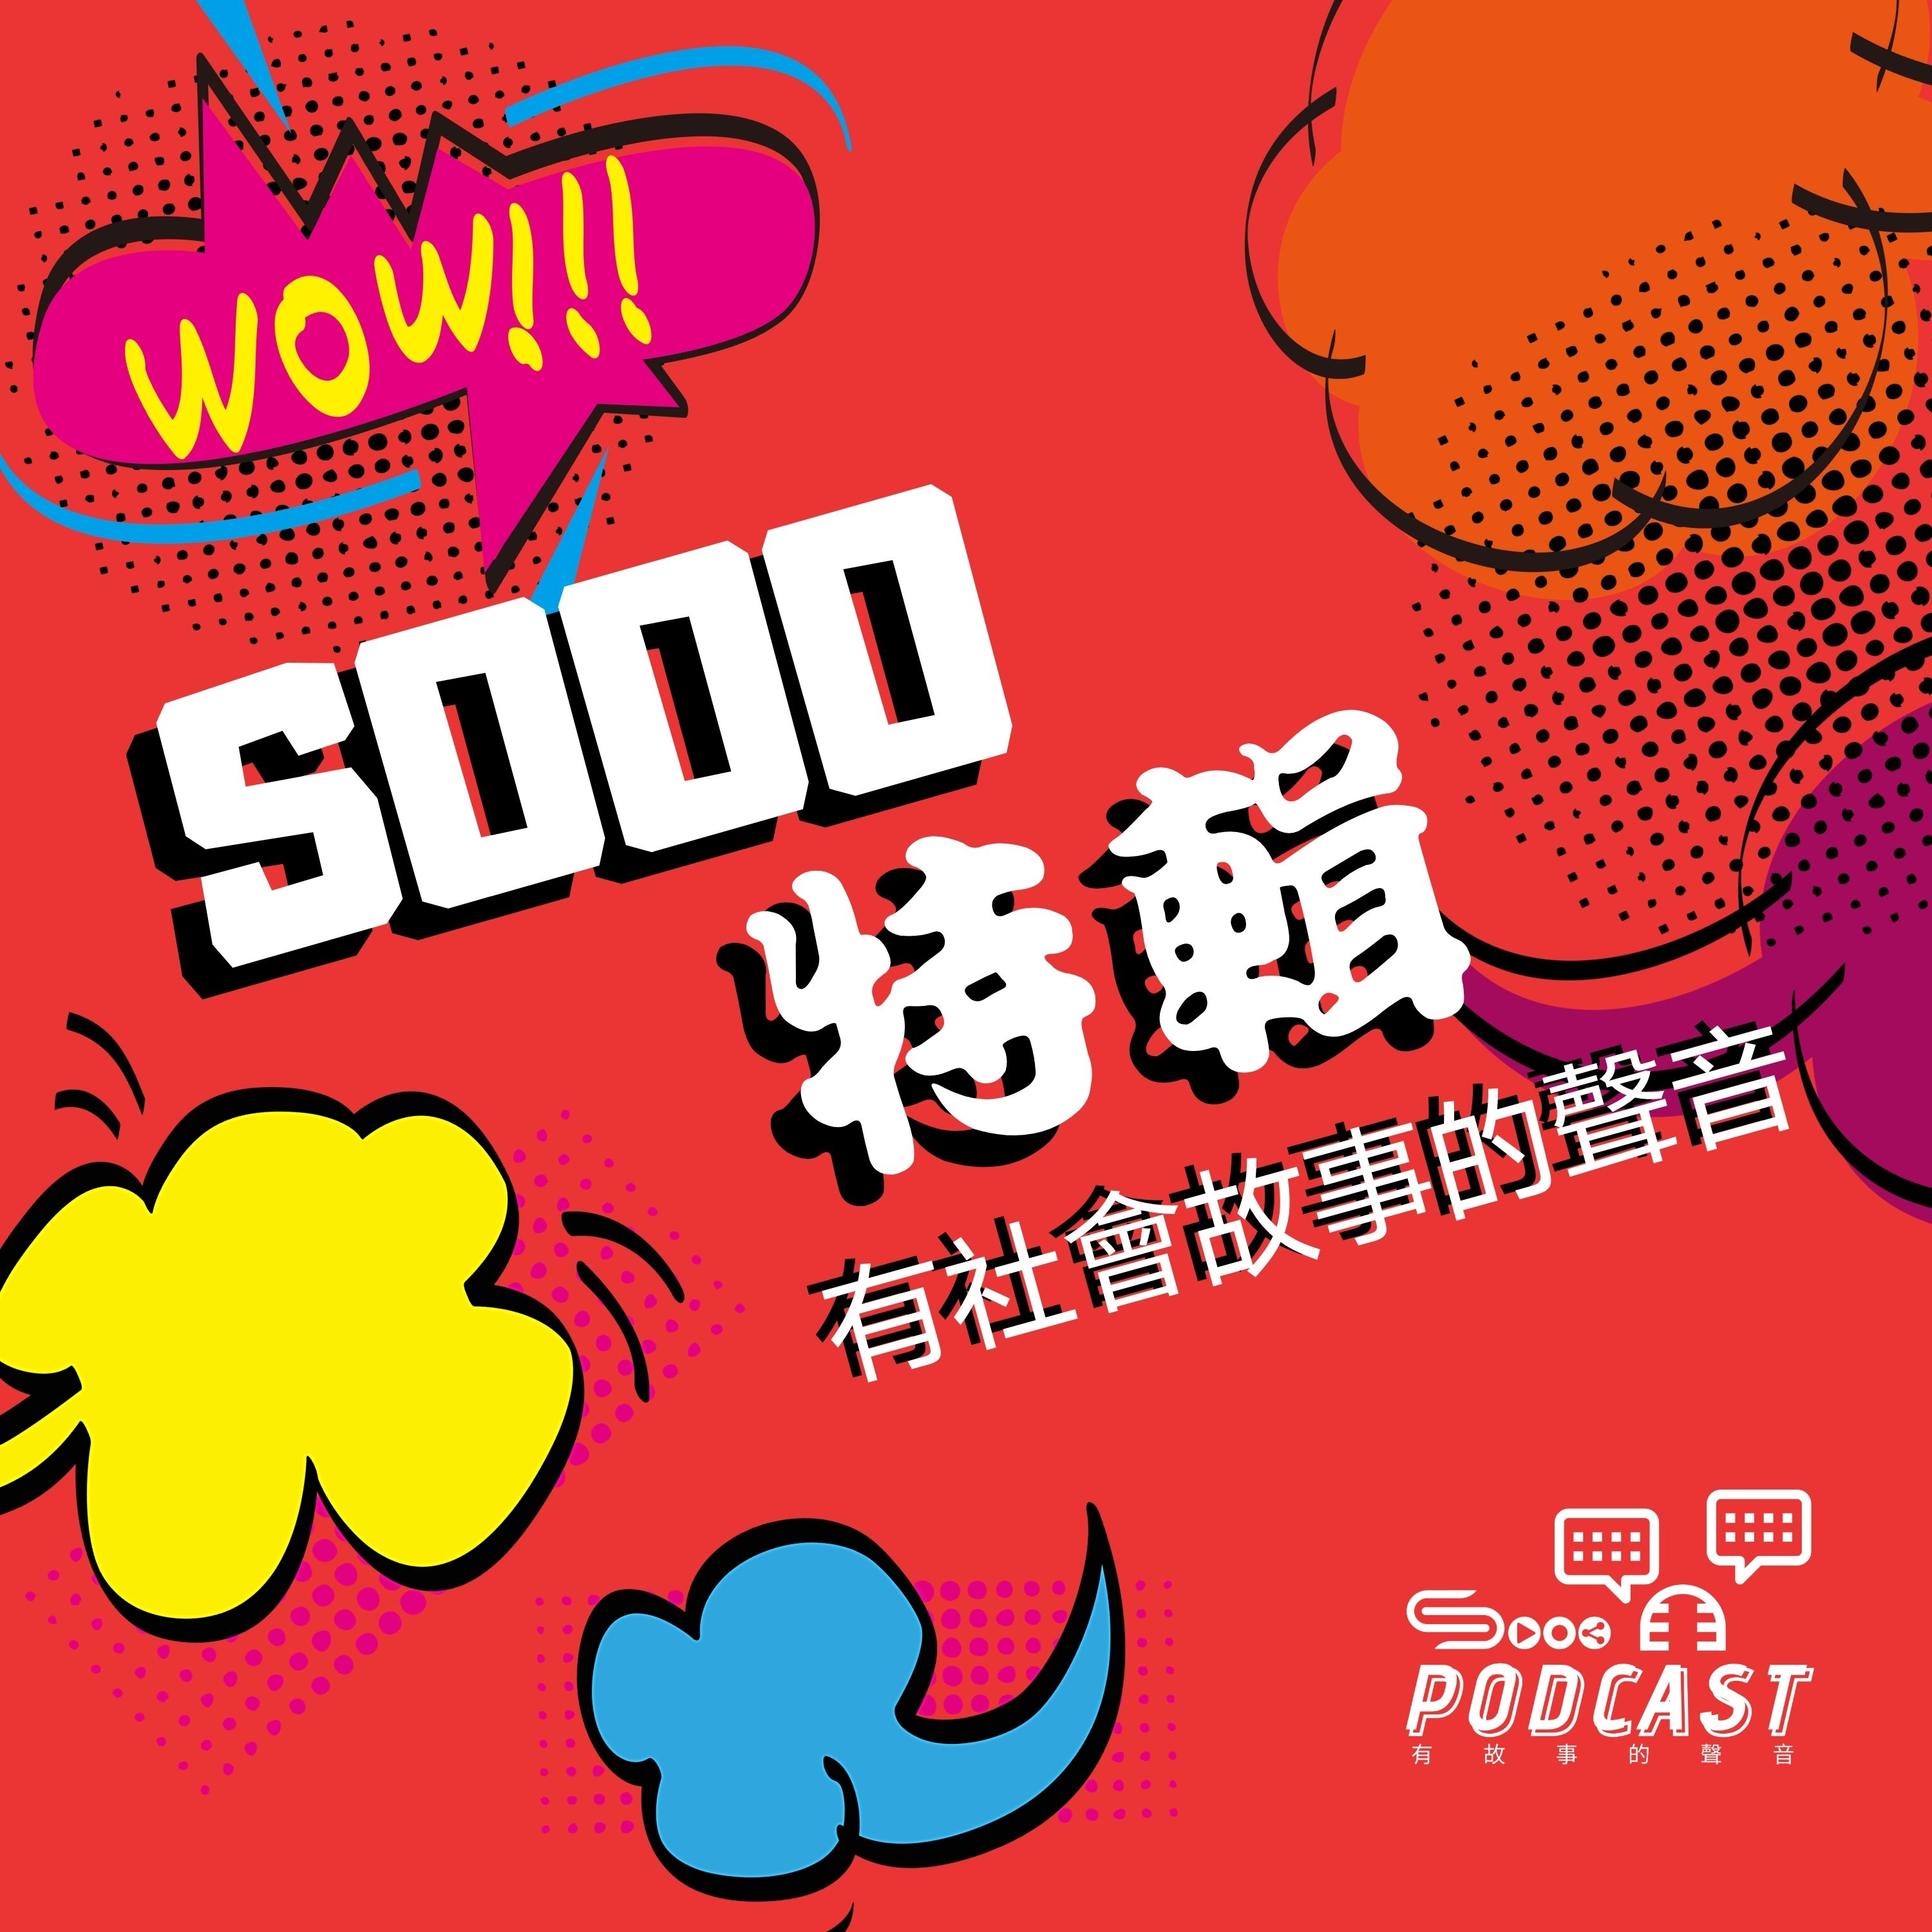 Artwork for podcast Sooo 特輯  社會故事的聲音